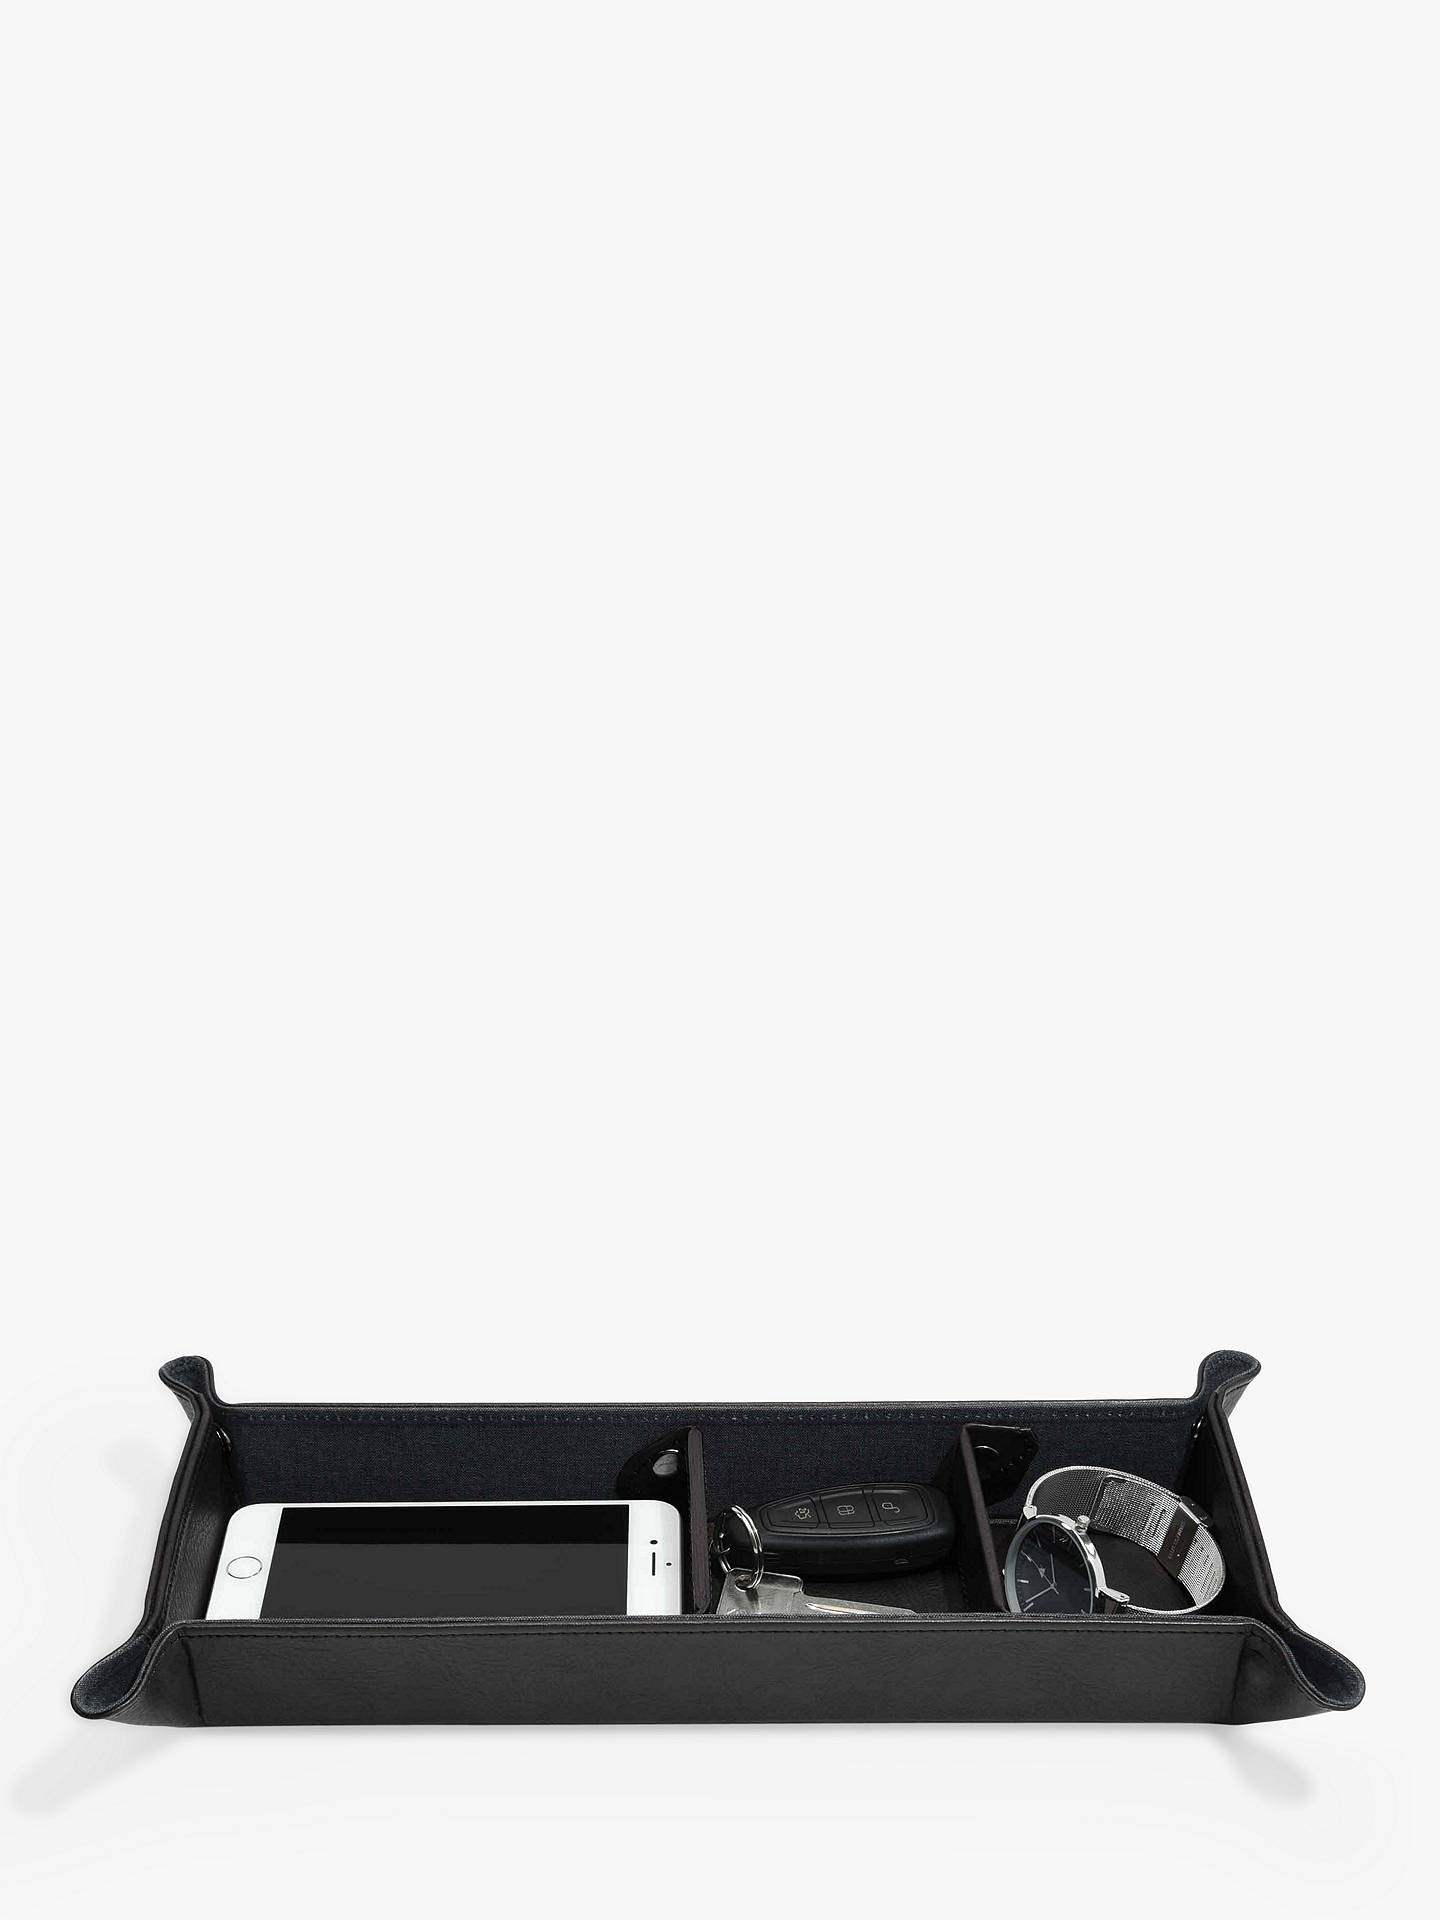 BuyStackers Large Catchall, Black Online at johnlewis.com